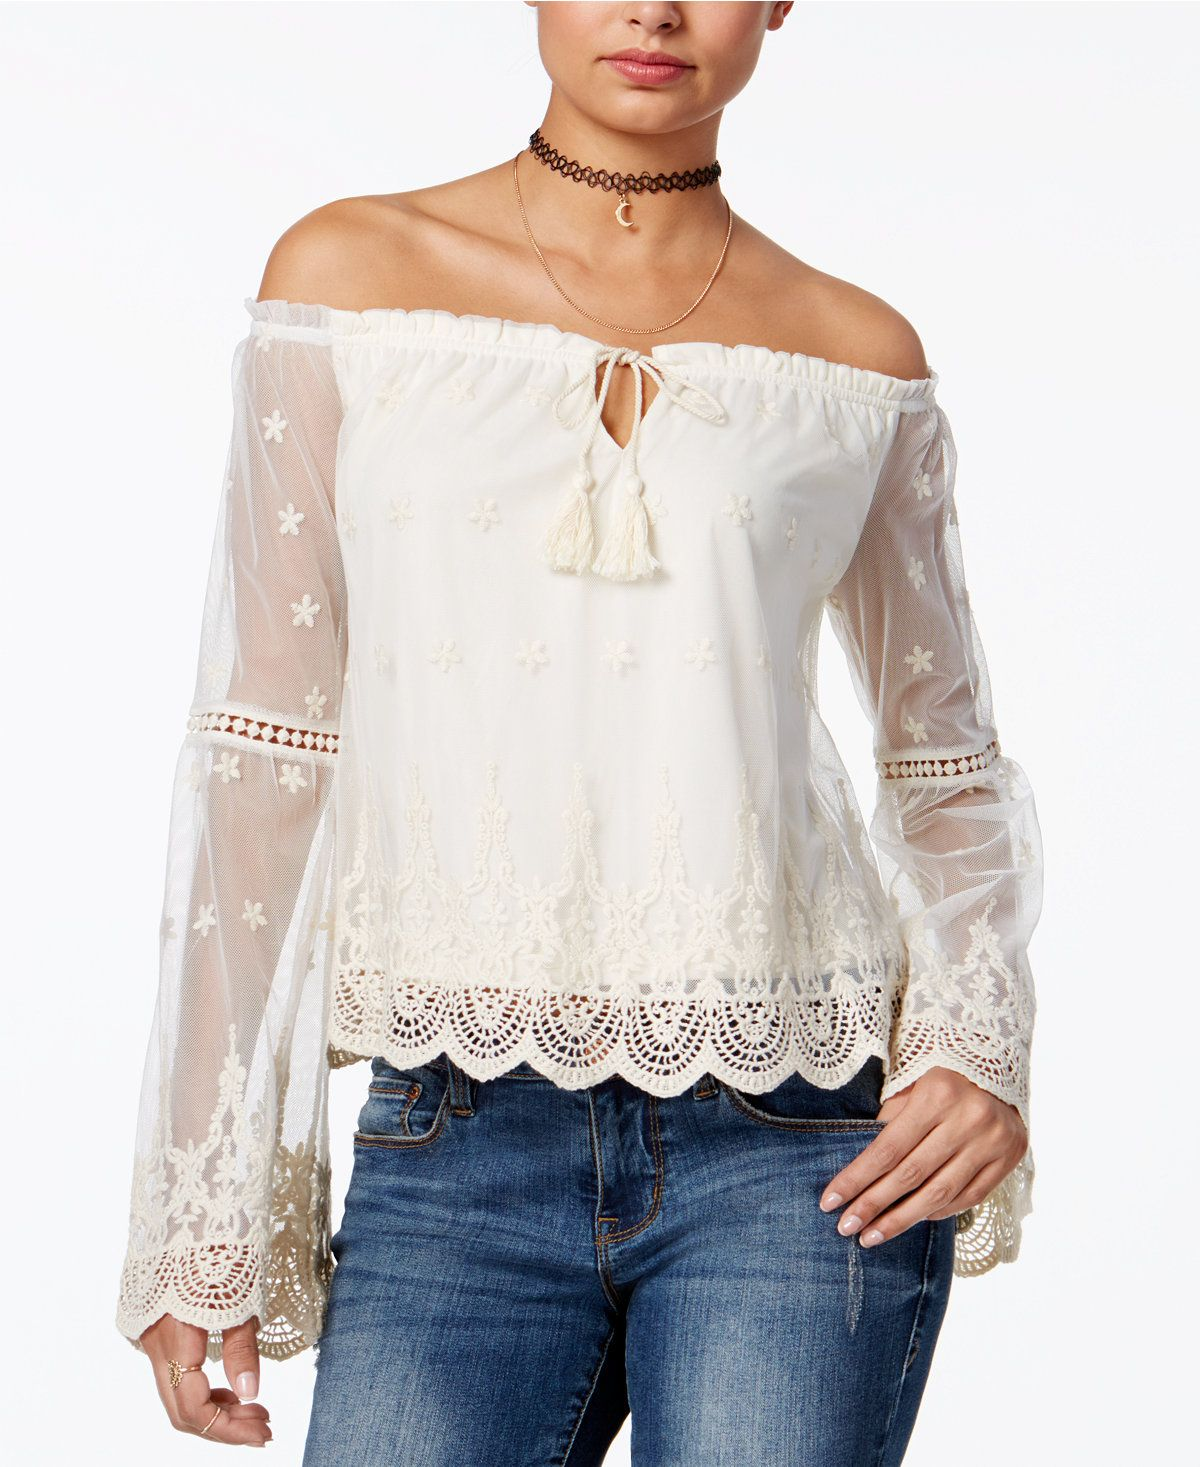 9c5c9394d95 American Rag Off-The-Shoulder Peasant Top